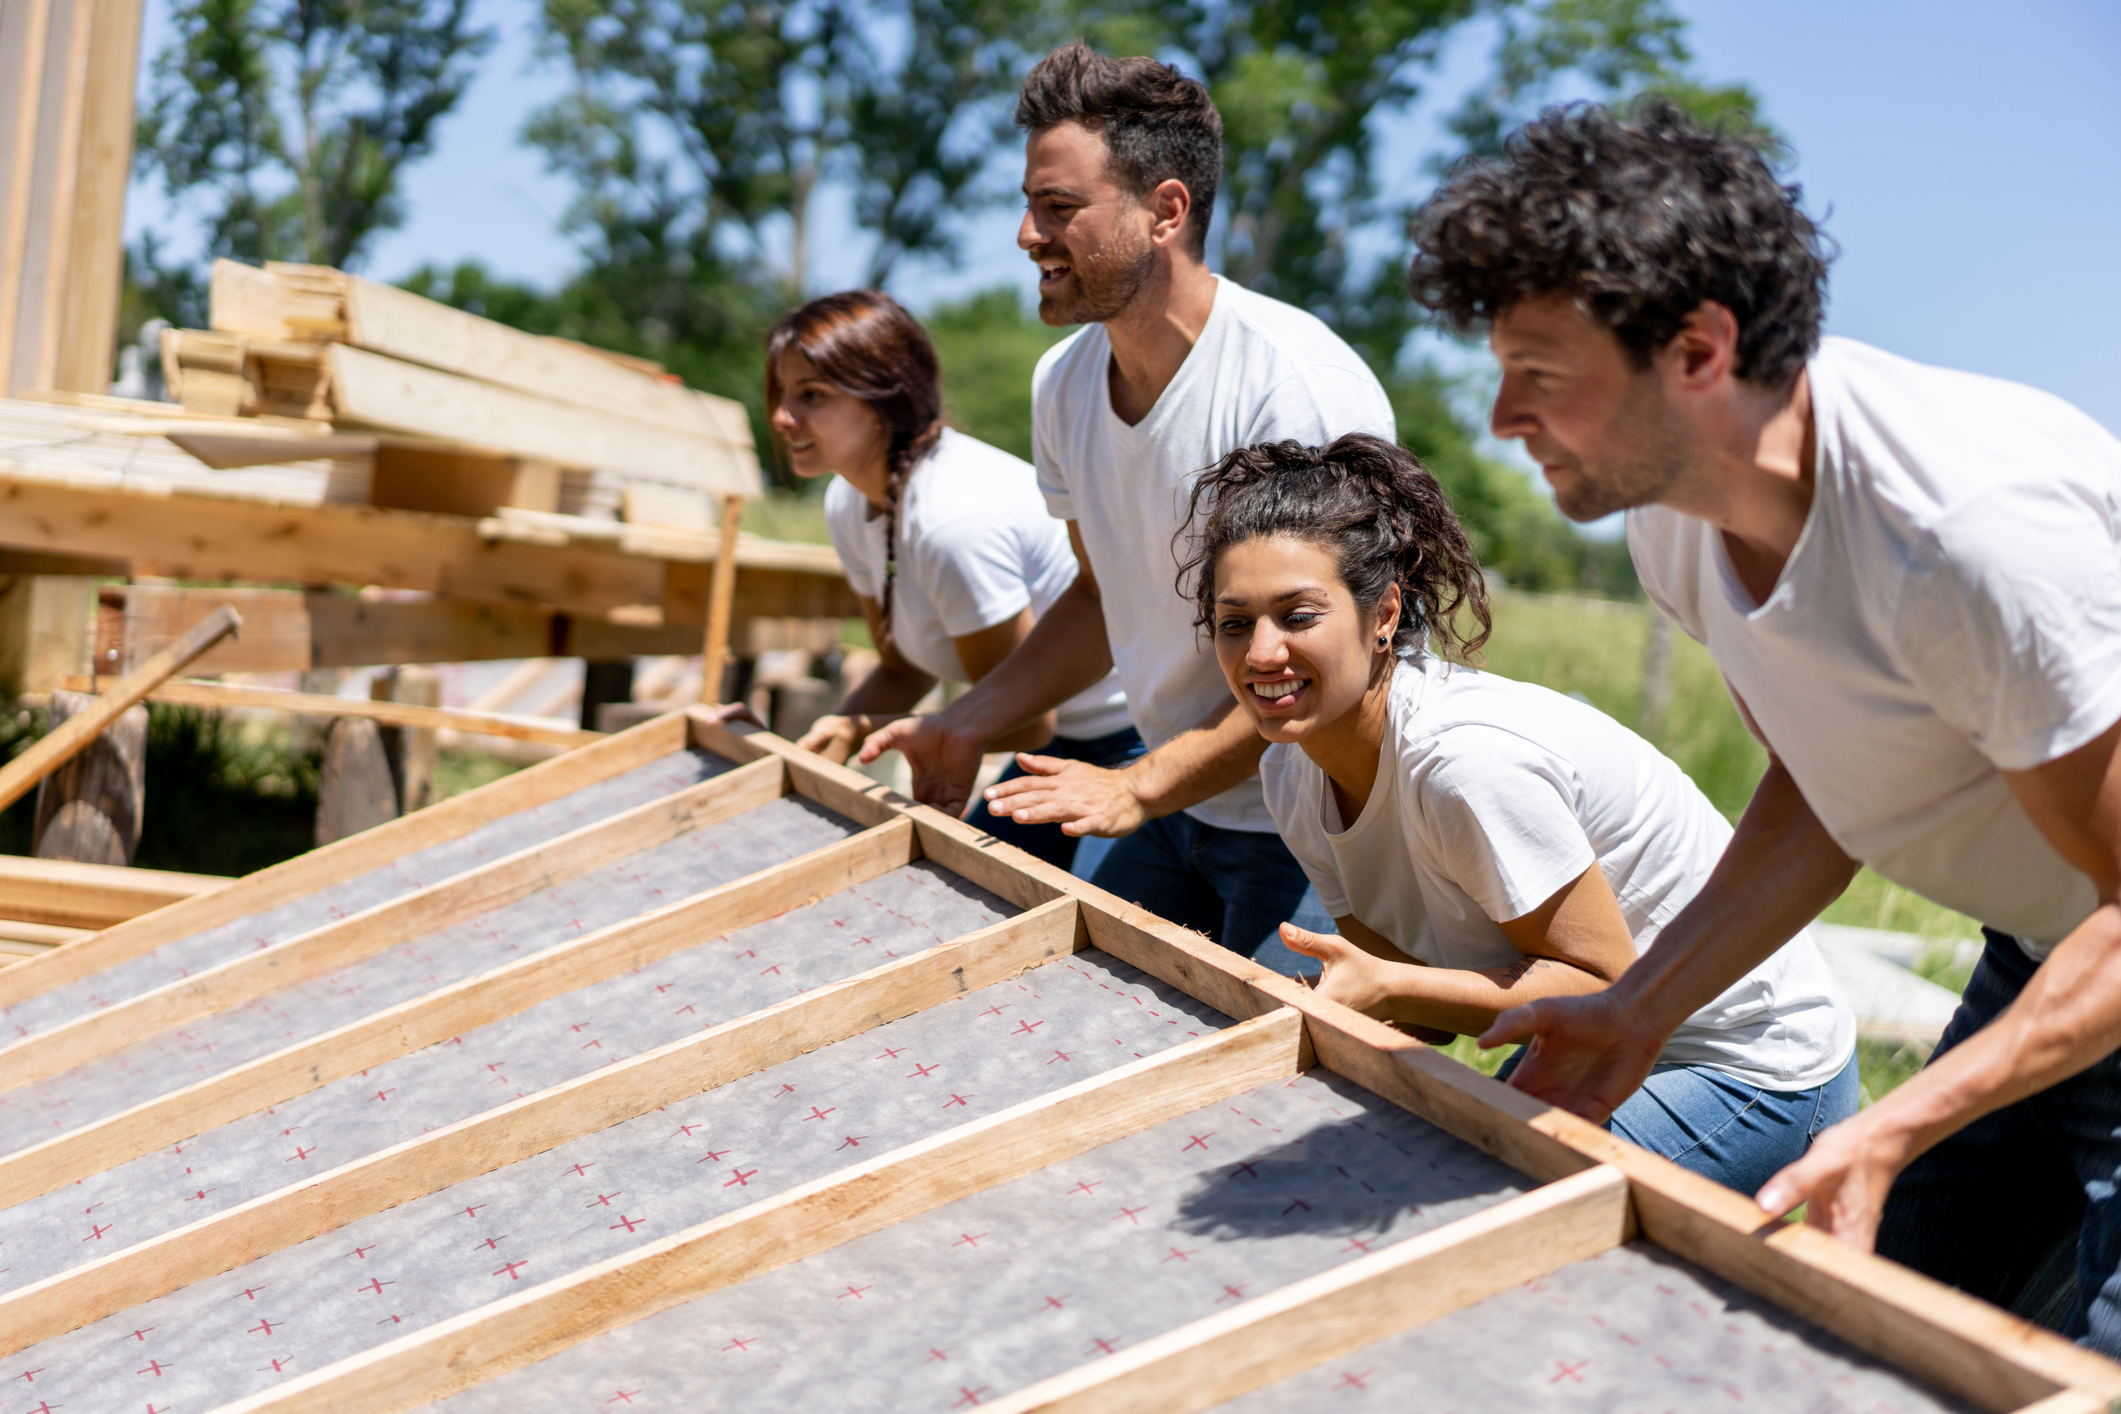 Latin american volunteers working hard at a charity construction project